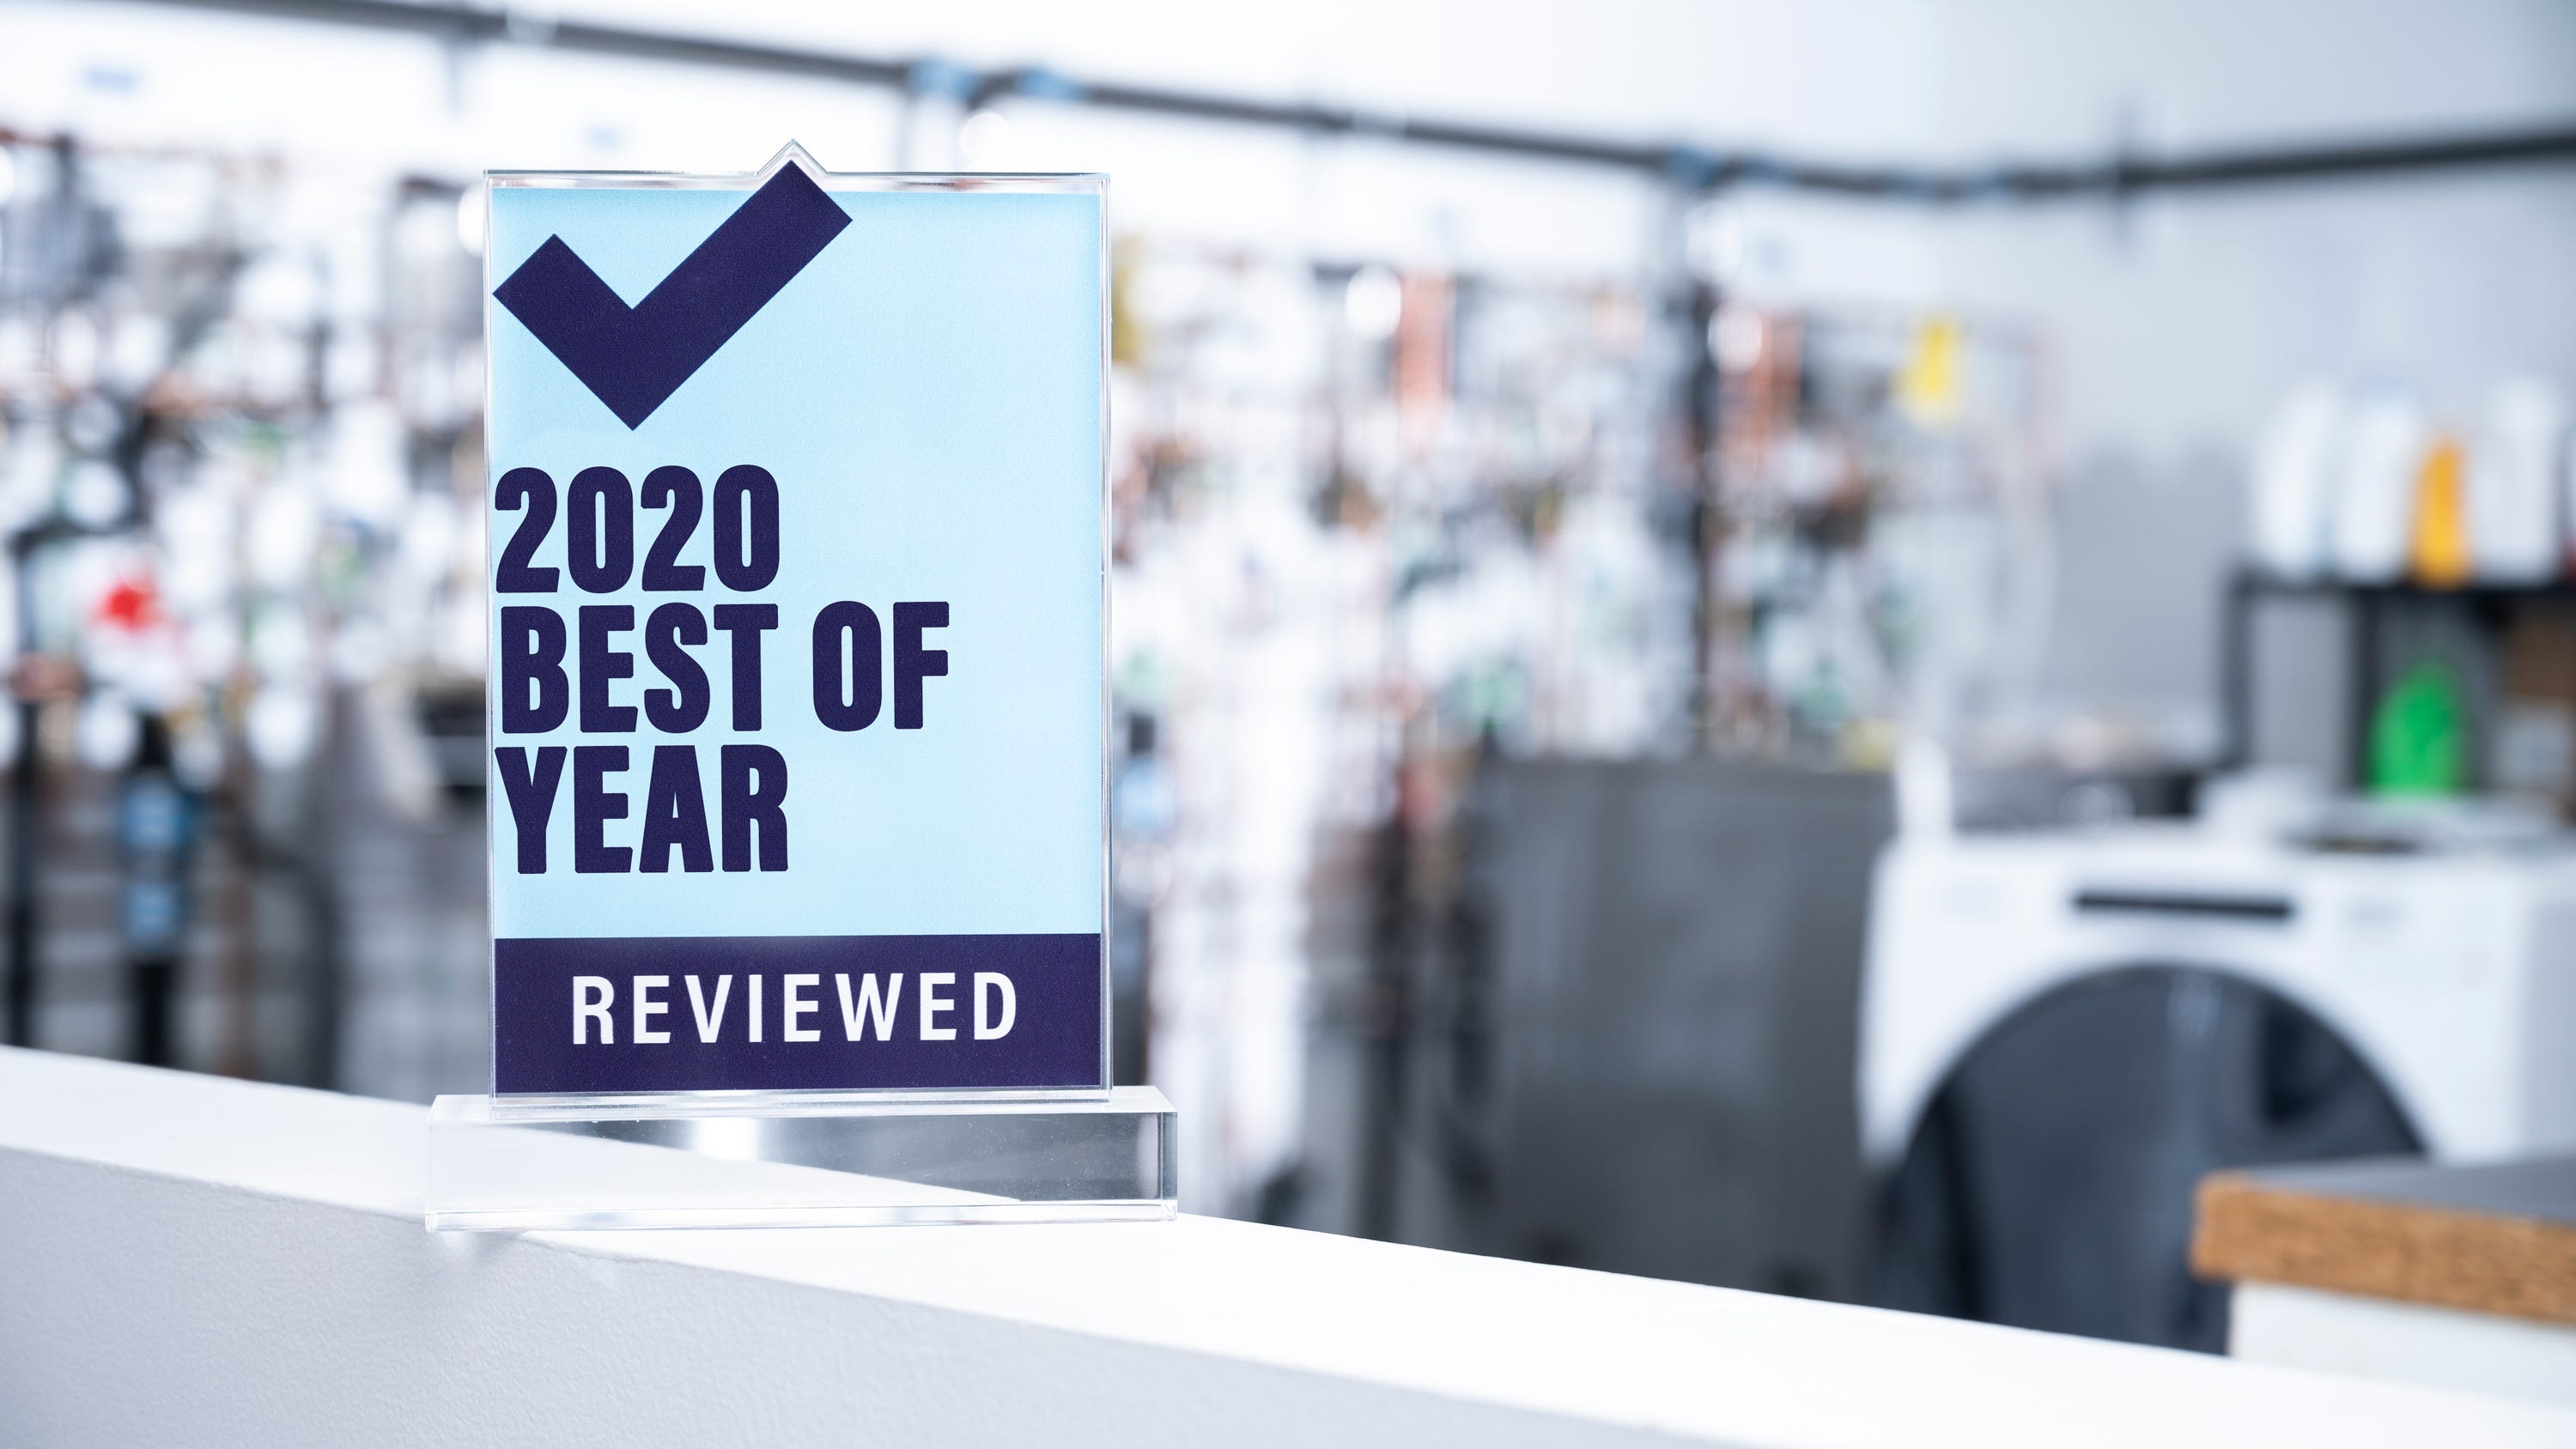 Reviewed announces 2020 Best of Year awards